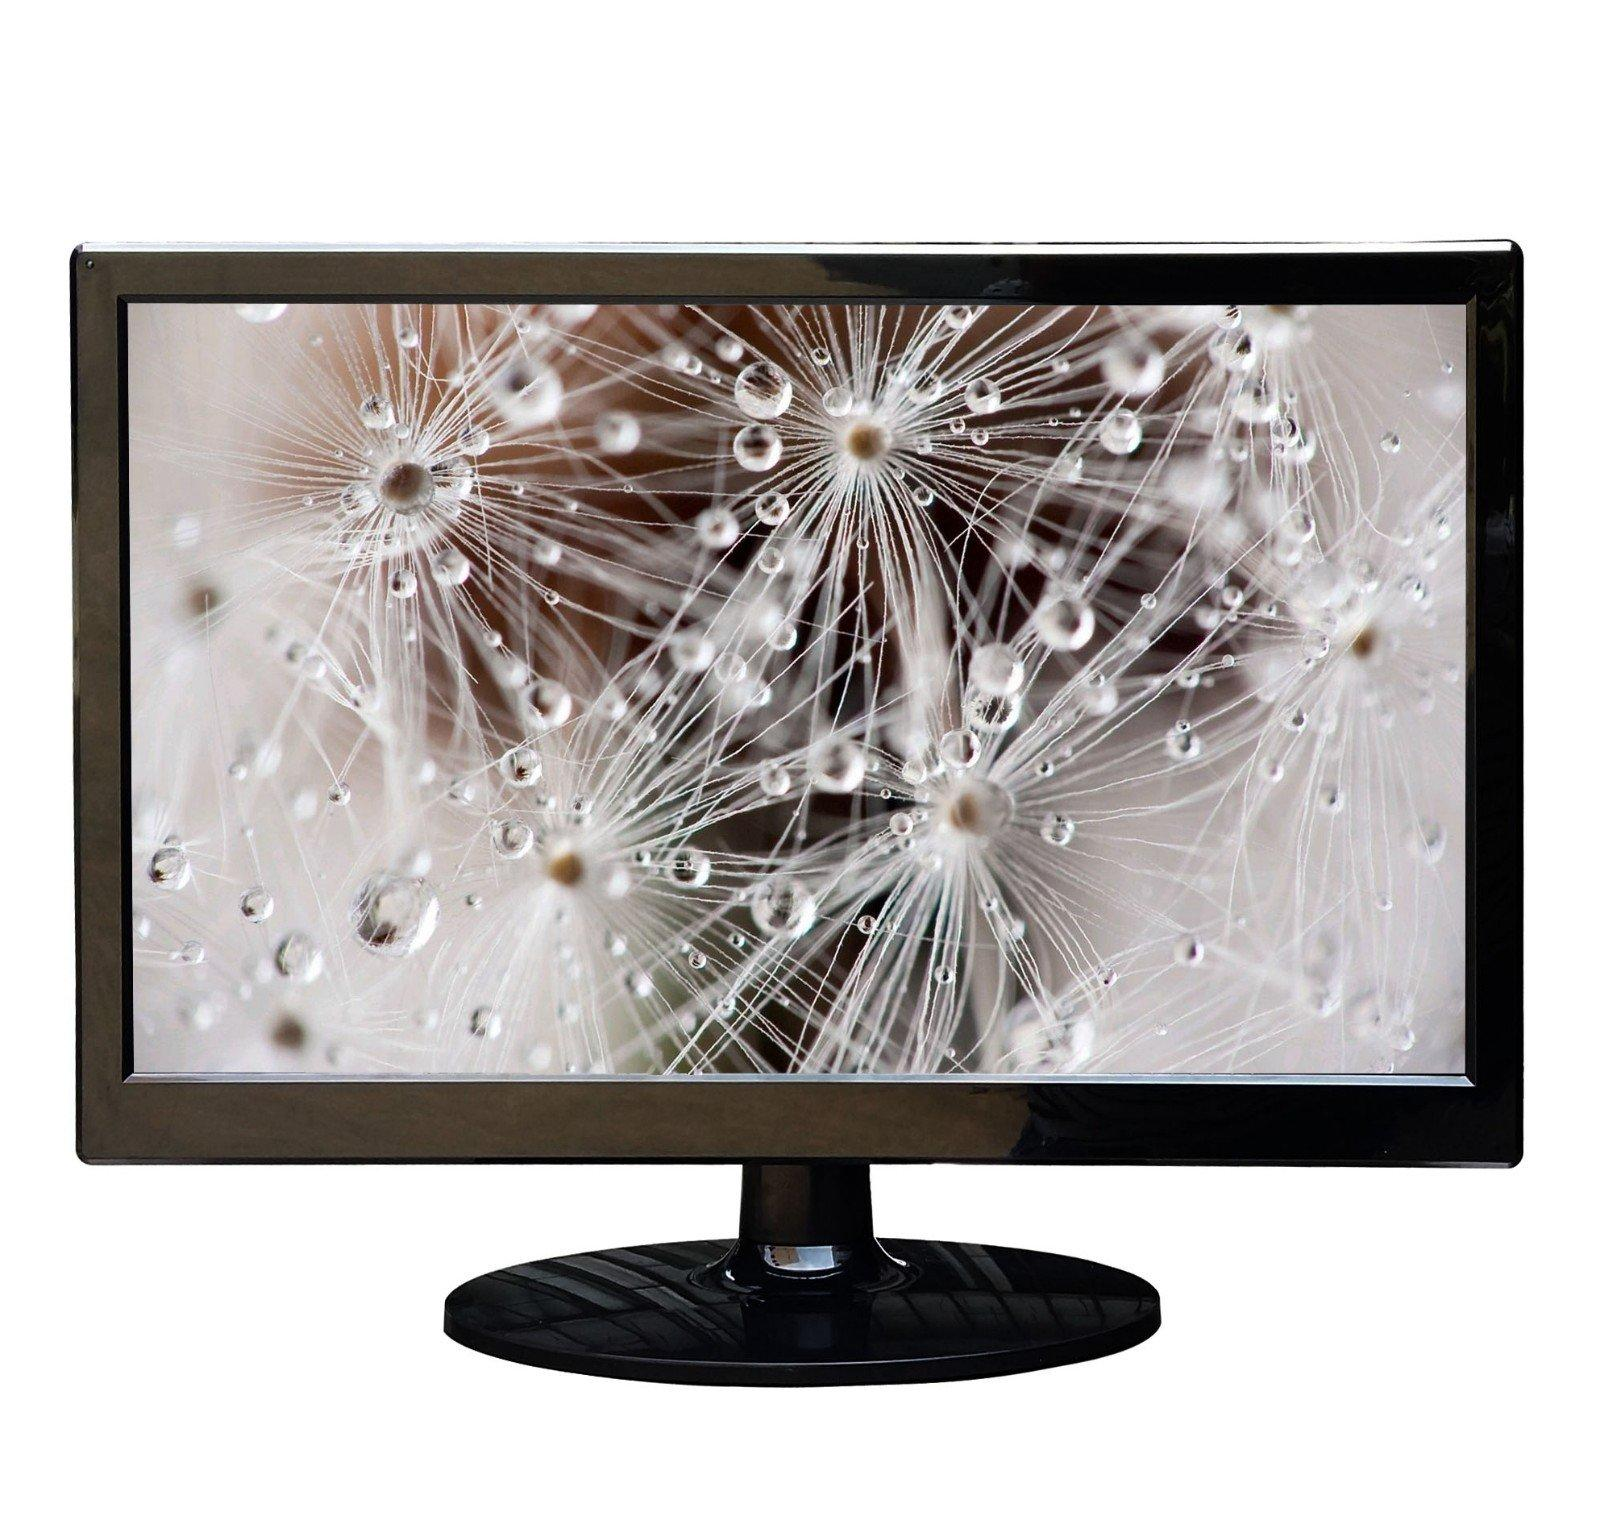 Xinyao LCD low price 18 inch monitor with slim led backlight for lcd tv screen-3